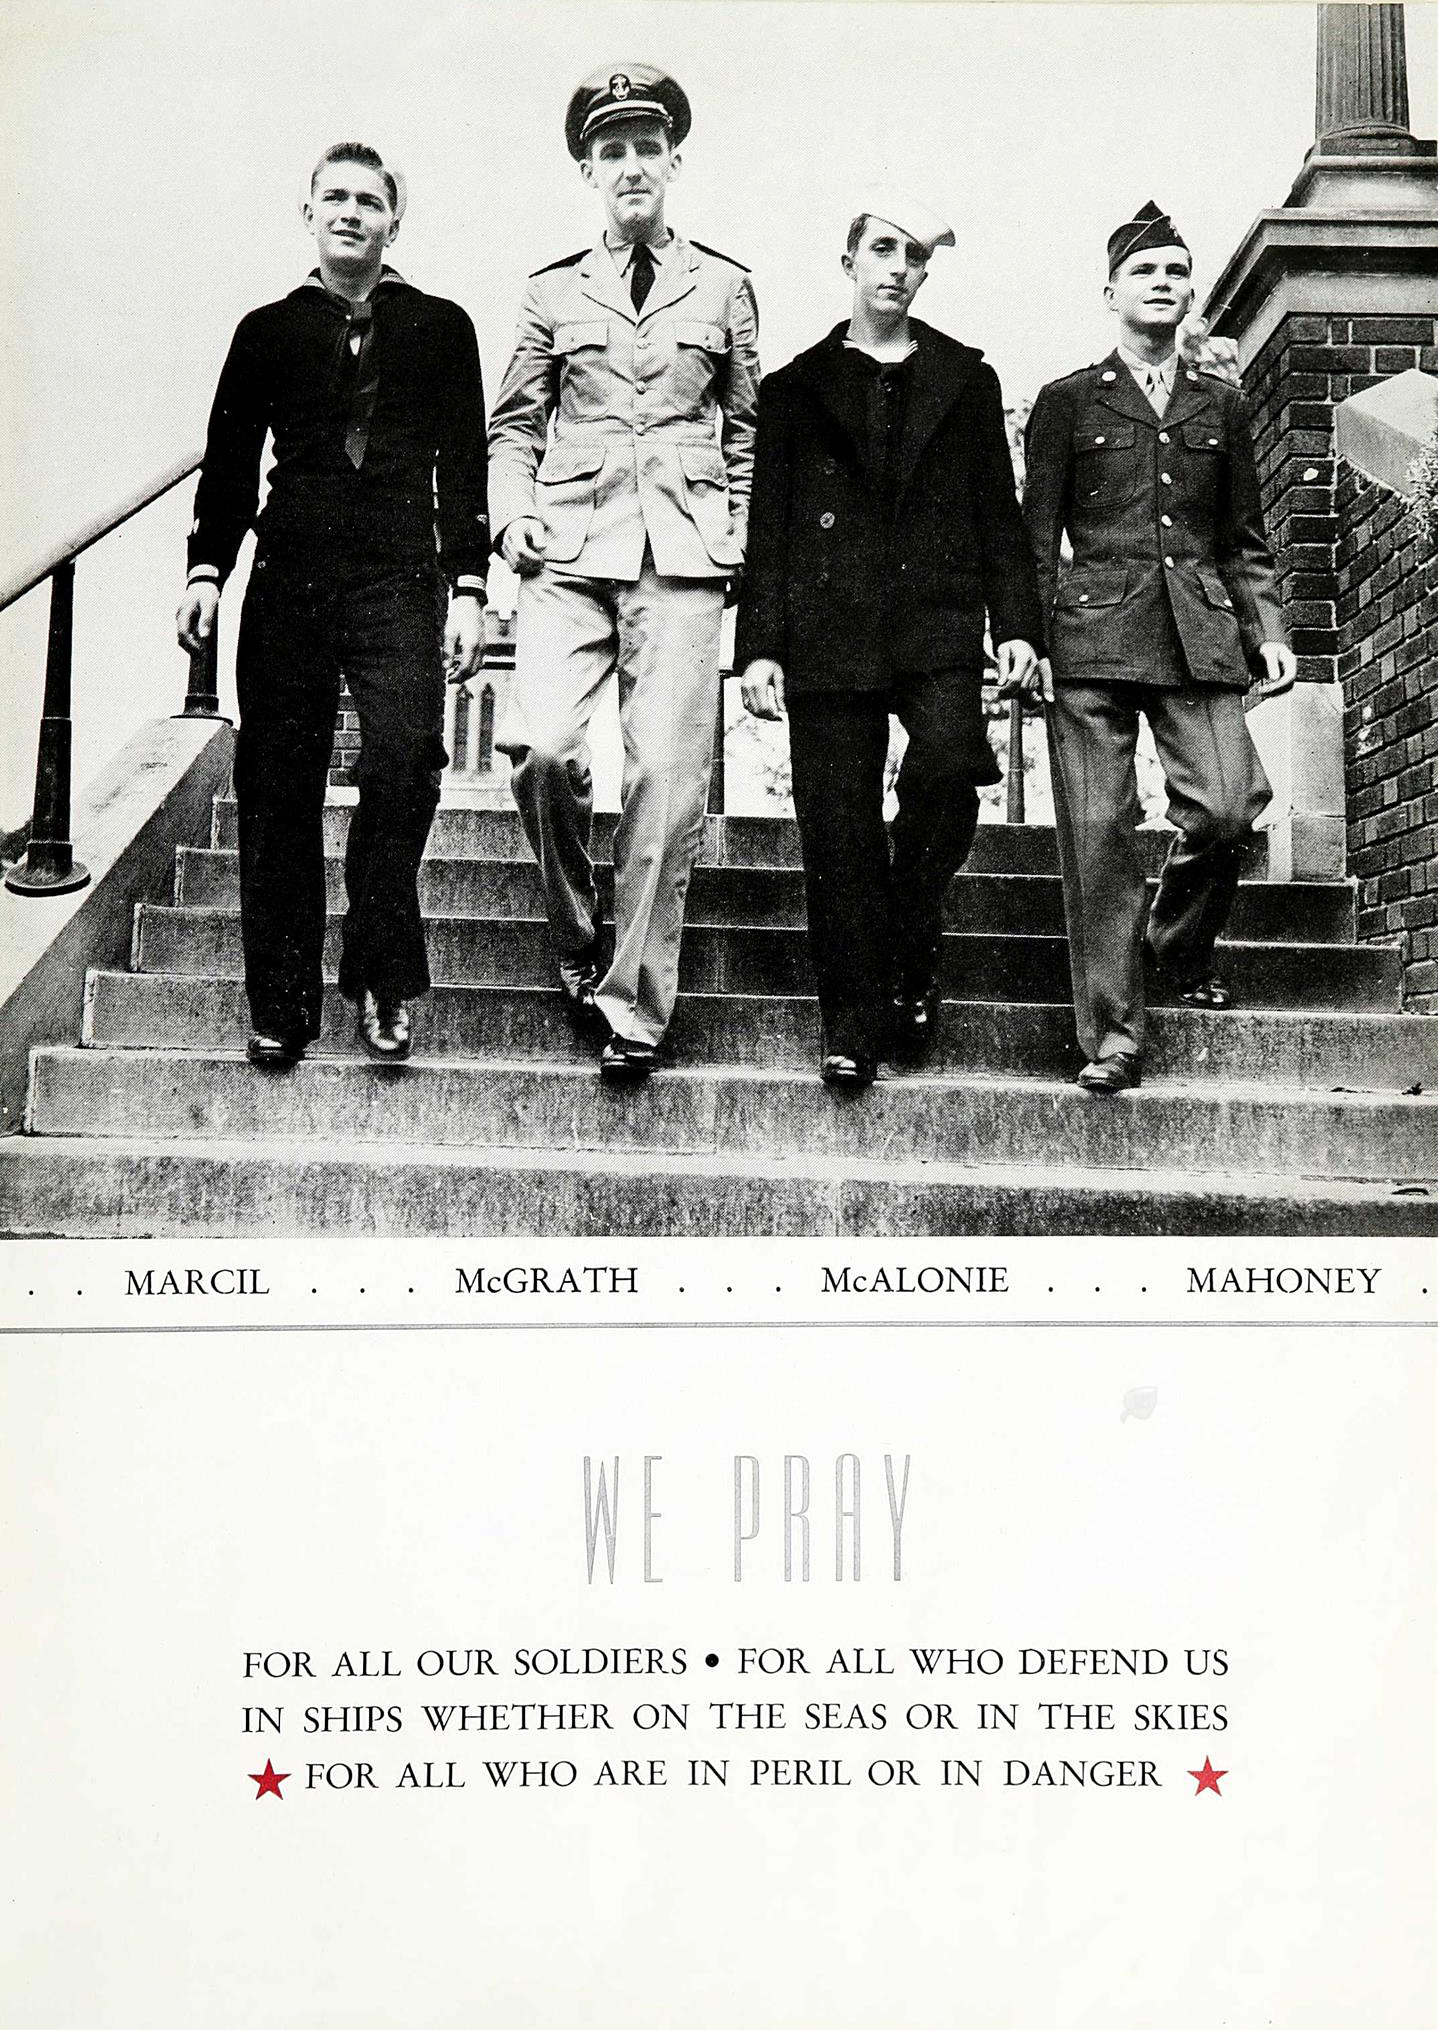 In this October 1943 photo provided by Catholic Central High School, four classmates in military uniform walk down the stairs at Catholic Central High